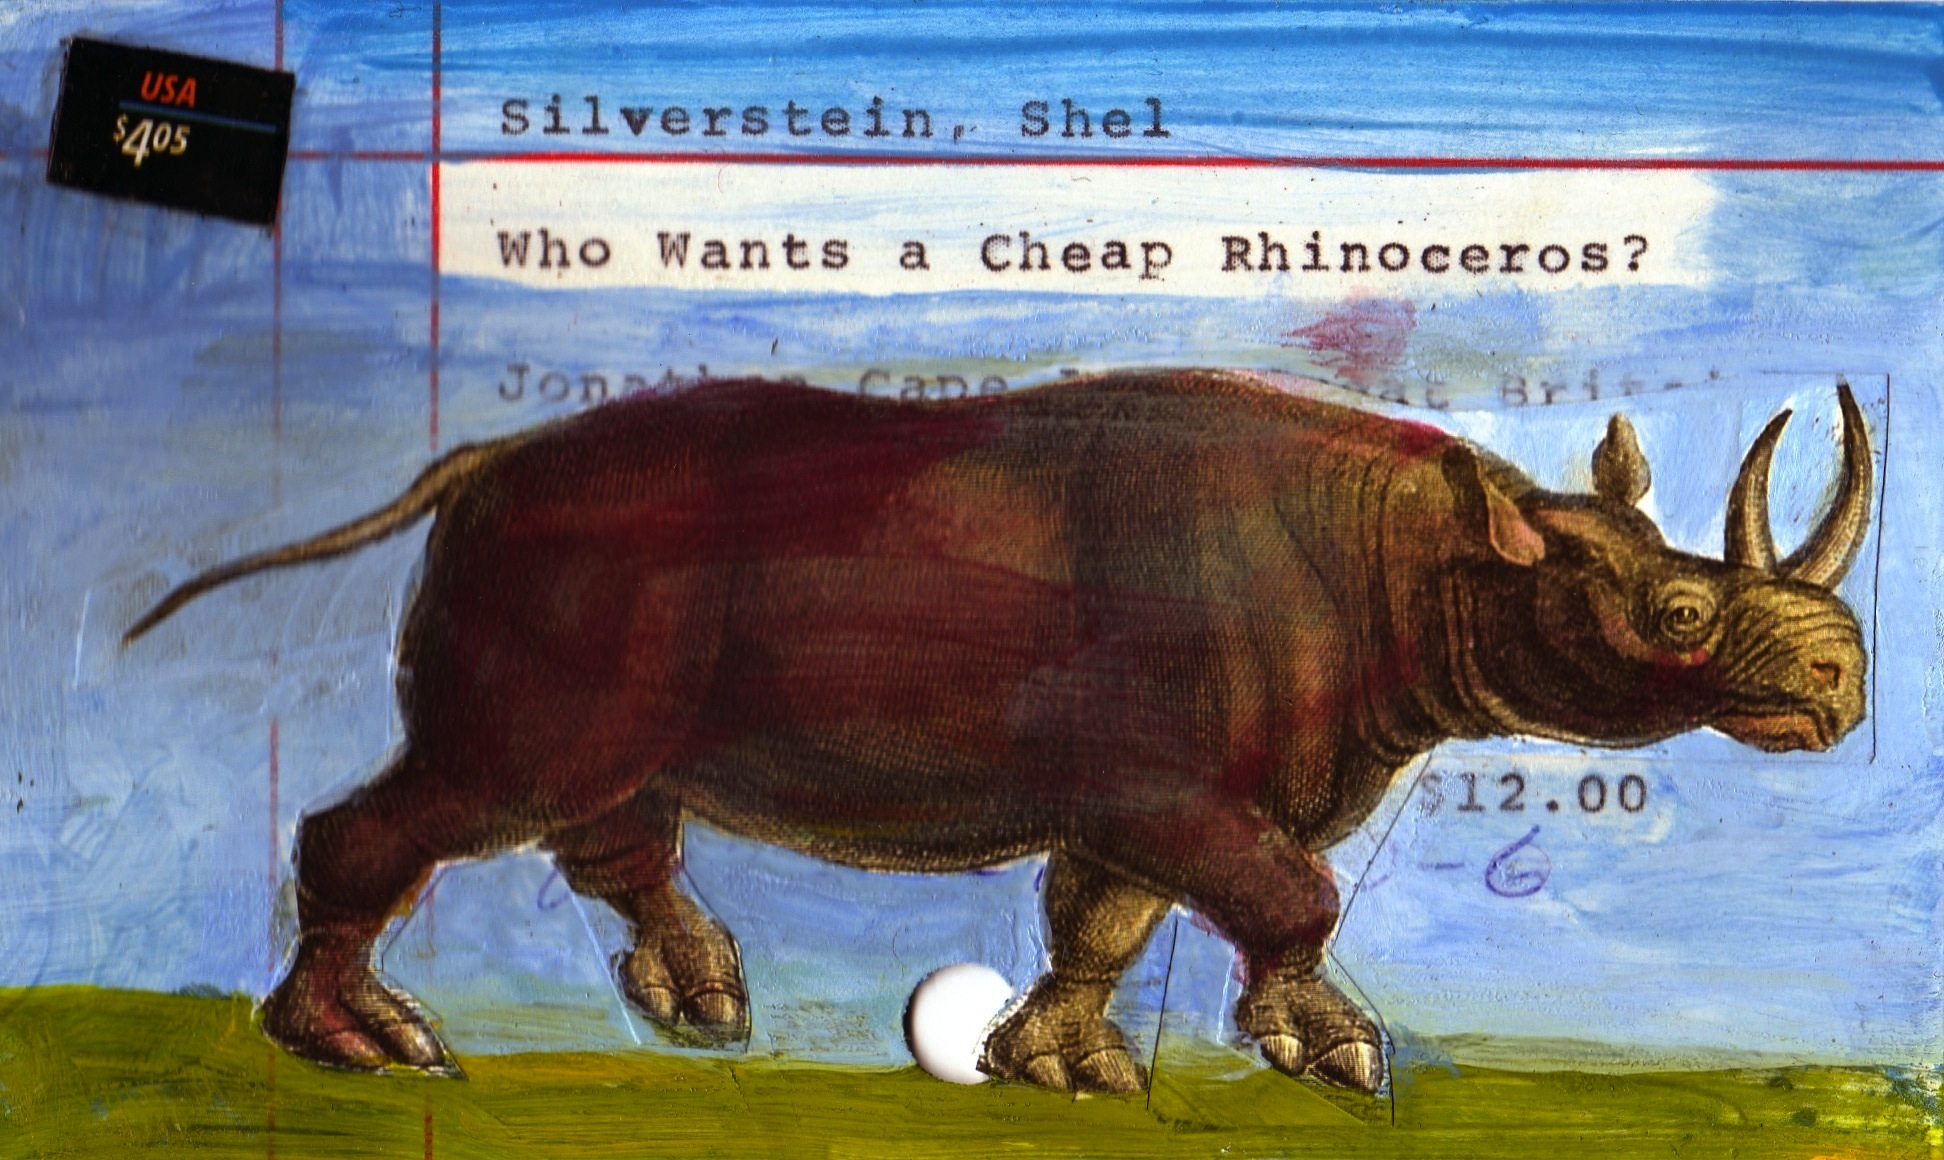 A cheap rhinoceros005.jpg